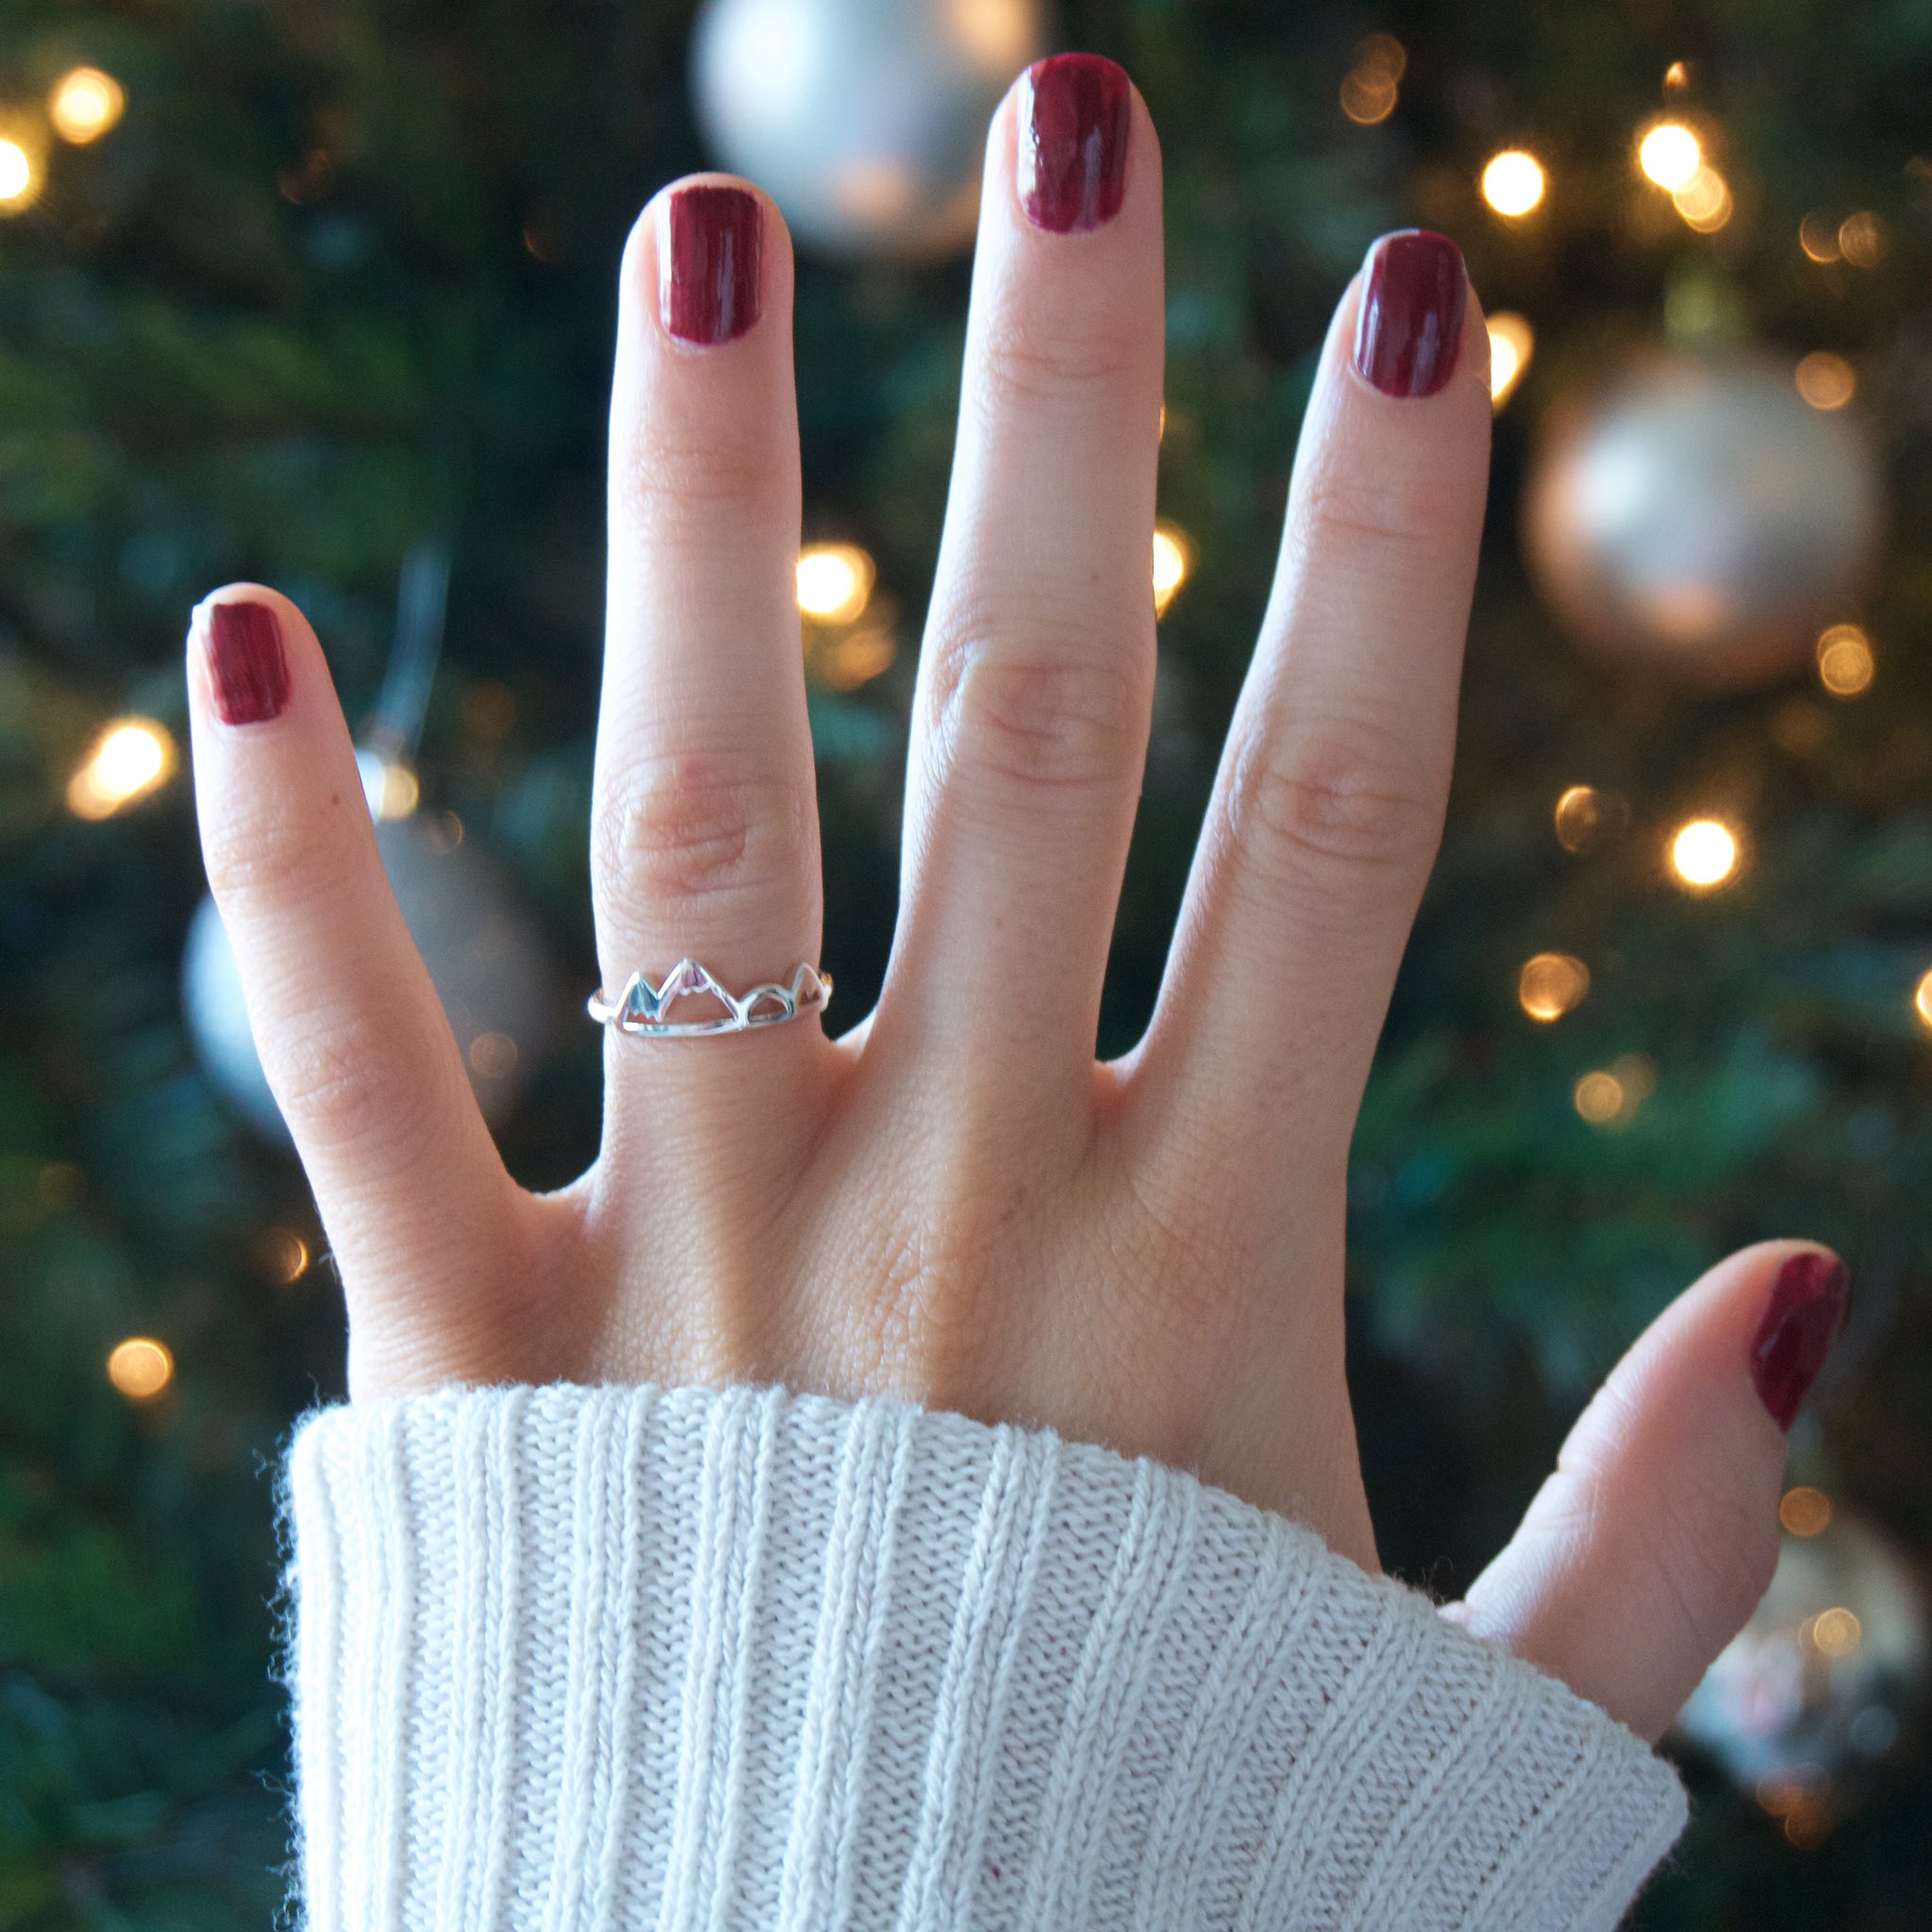 Neeed this high & low mountain ring from https://t.co/Uff0GMBIu2 https://t.co/ZjrwK31kEY